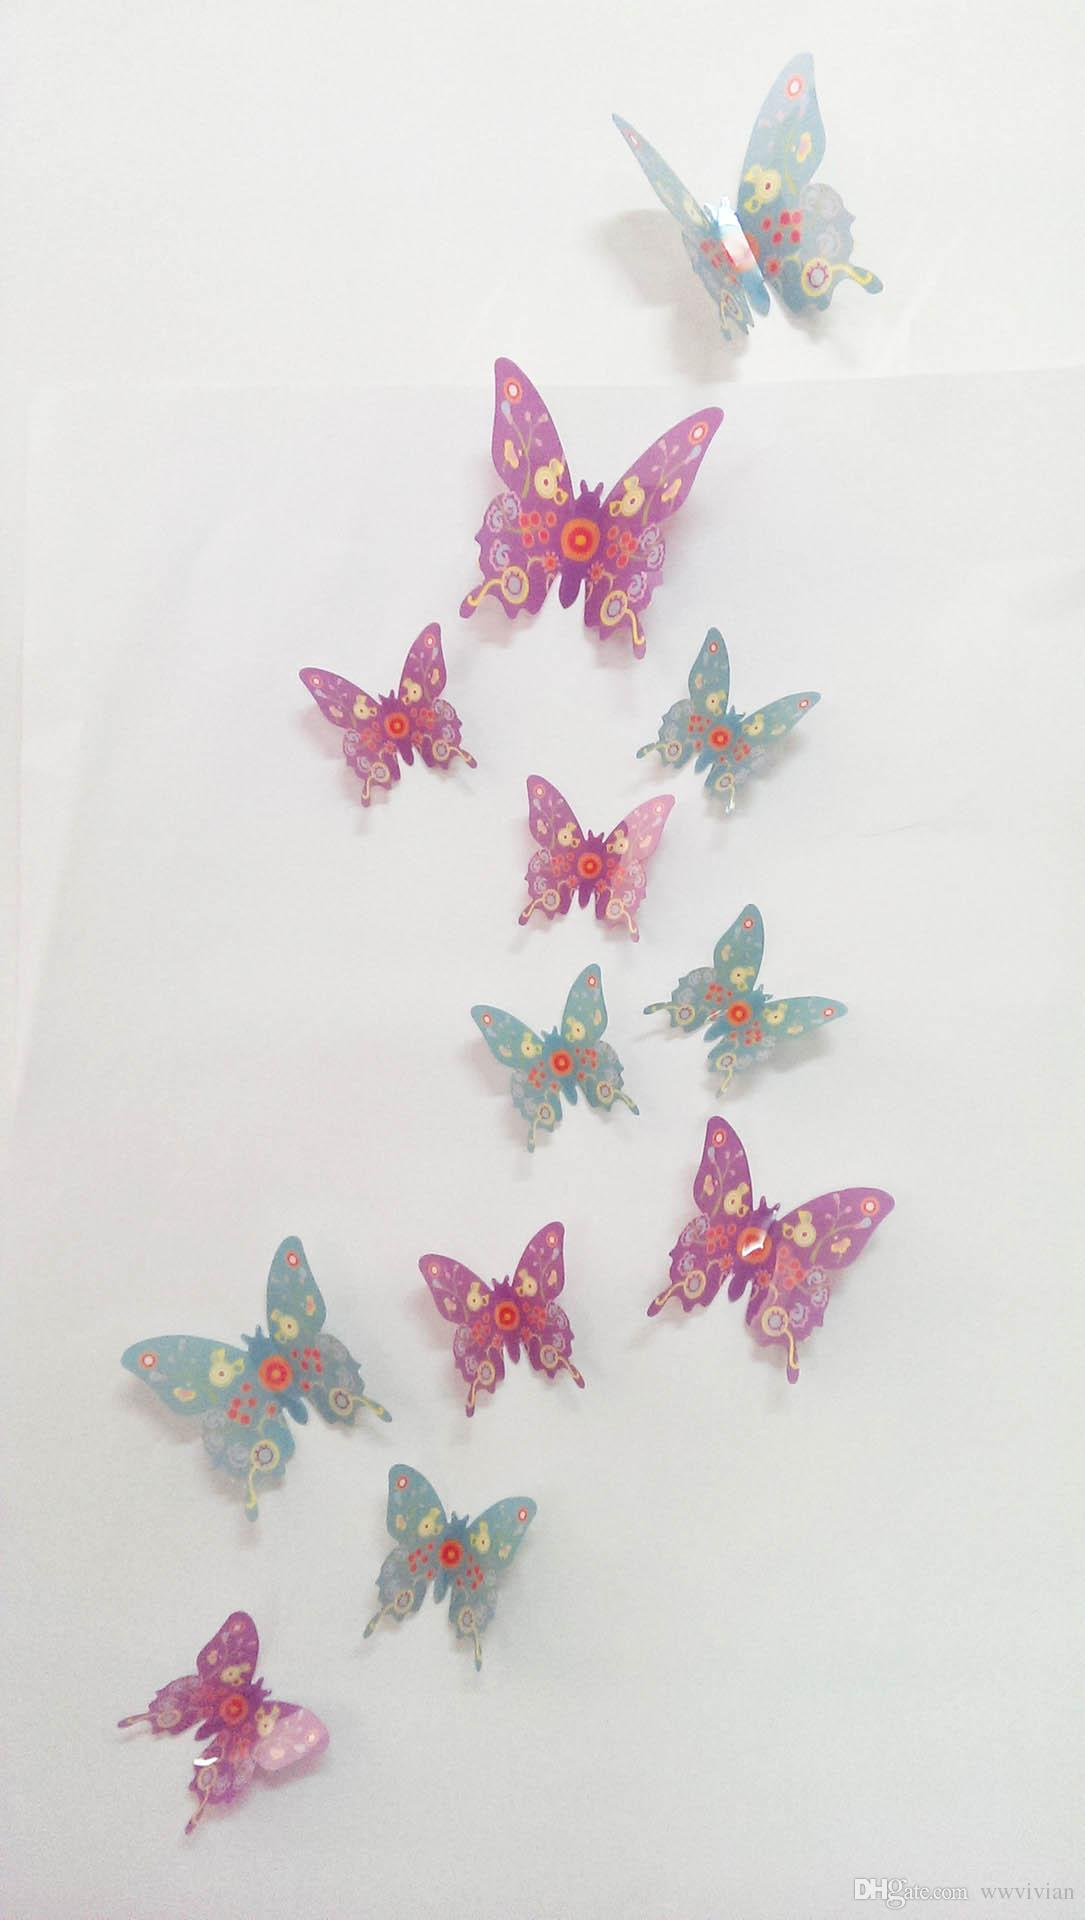 Colorful Butterfly 3D Wall Decals DIY Home Party Wedding Decoration Poster Kitchen Refrigerator Decal Crafts Butterfly Decor Mural